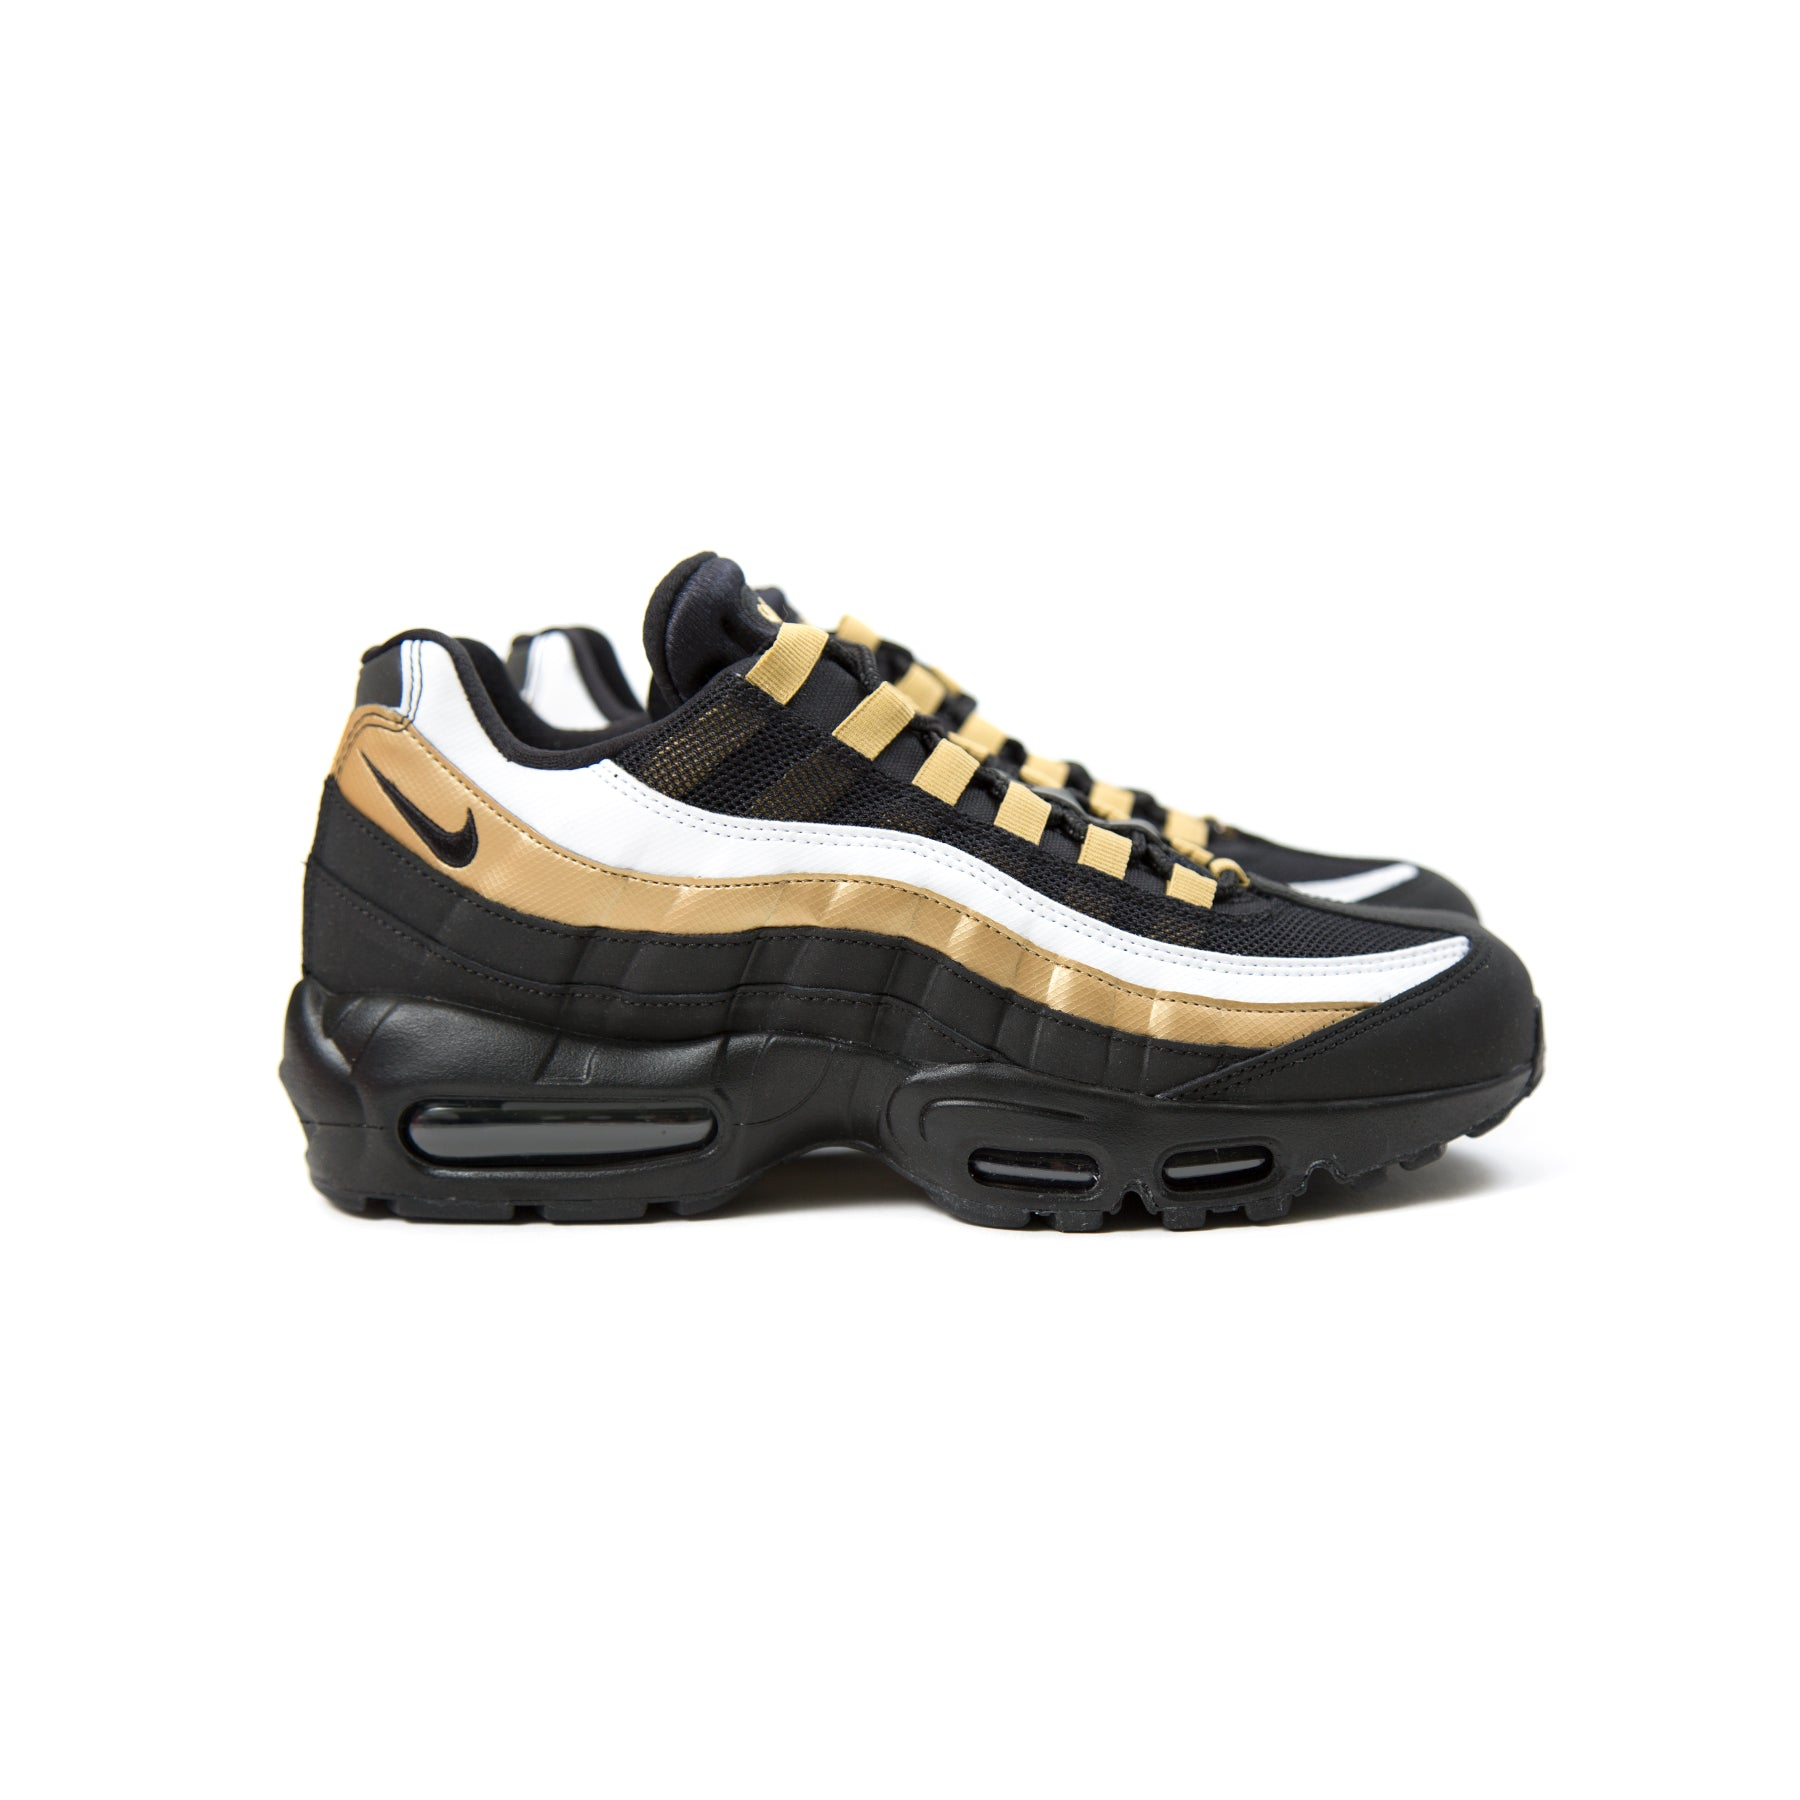 finest selection d2f82 2429c ConceptsIntl | Nike Air Max 95 OG (Black/Black/Metallic Gold ...